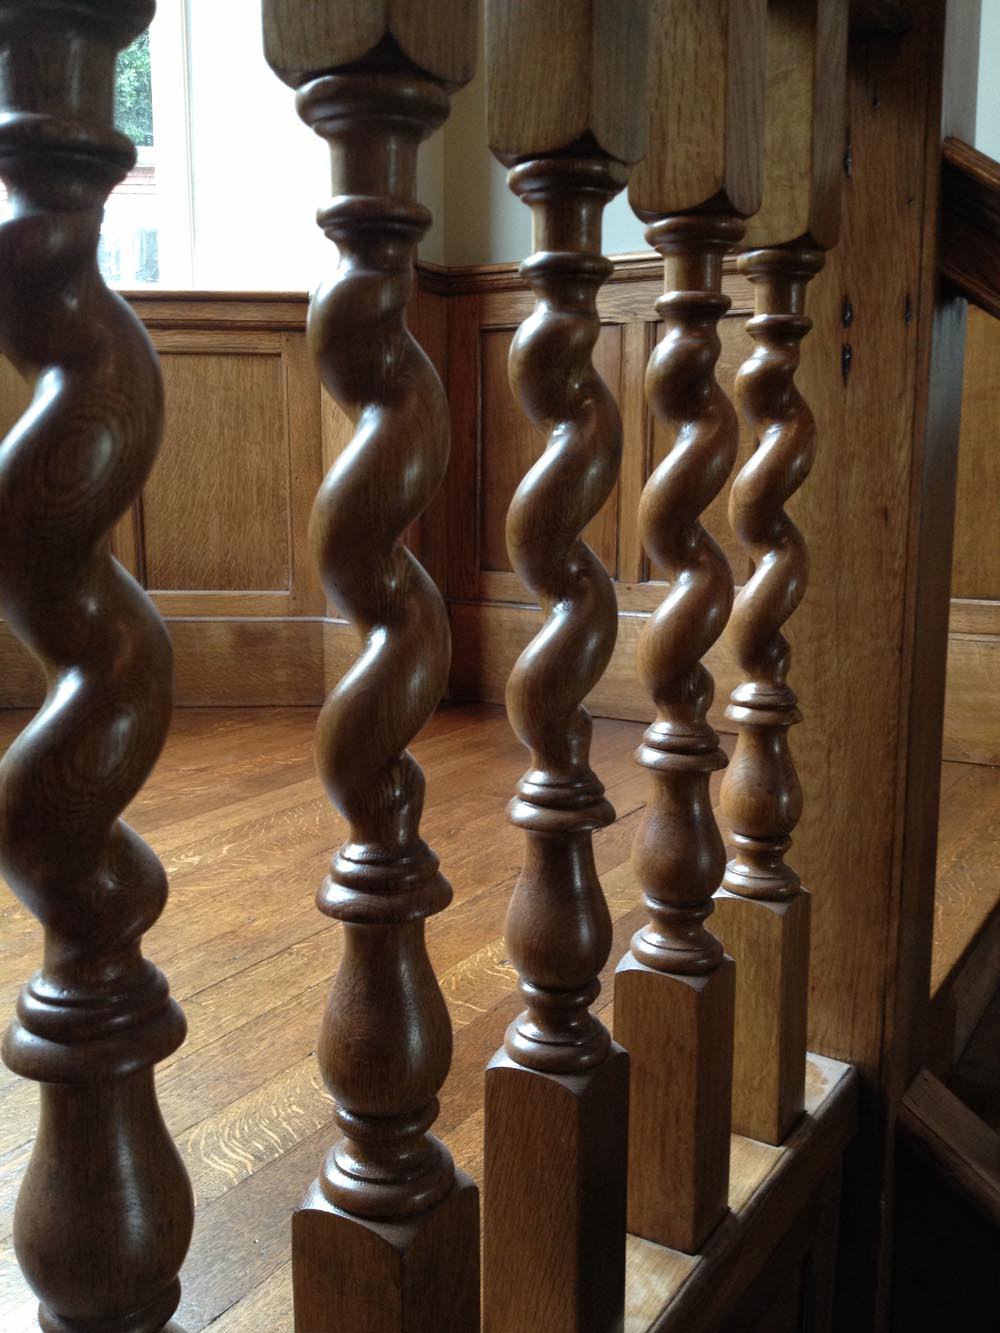 Barley twist oak balustrading after french polishing and waxing